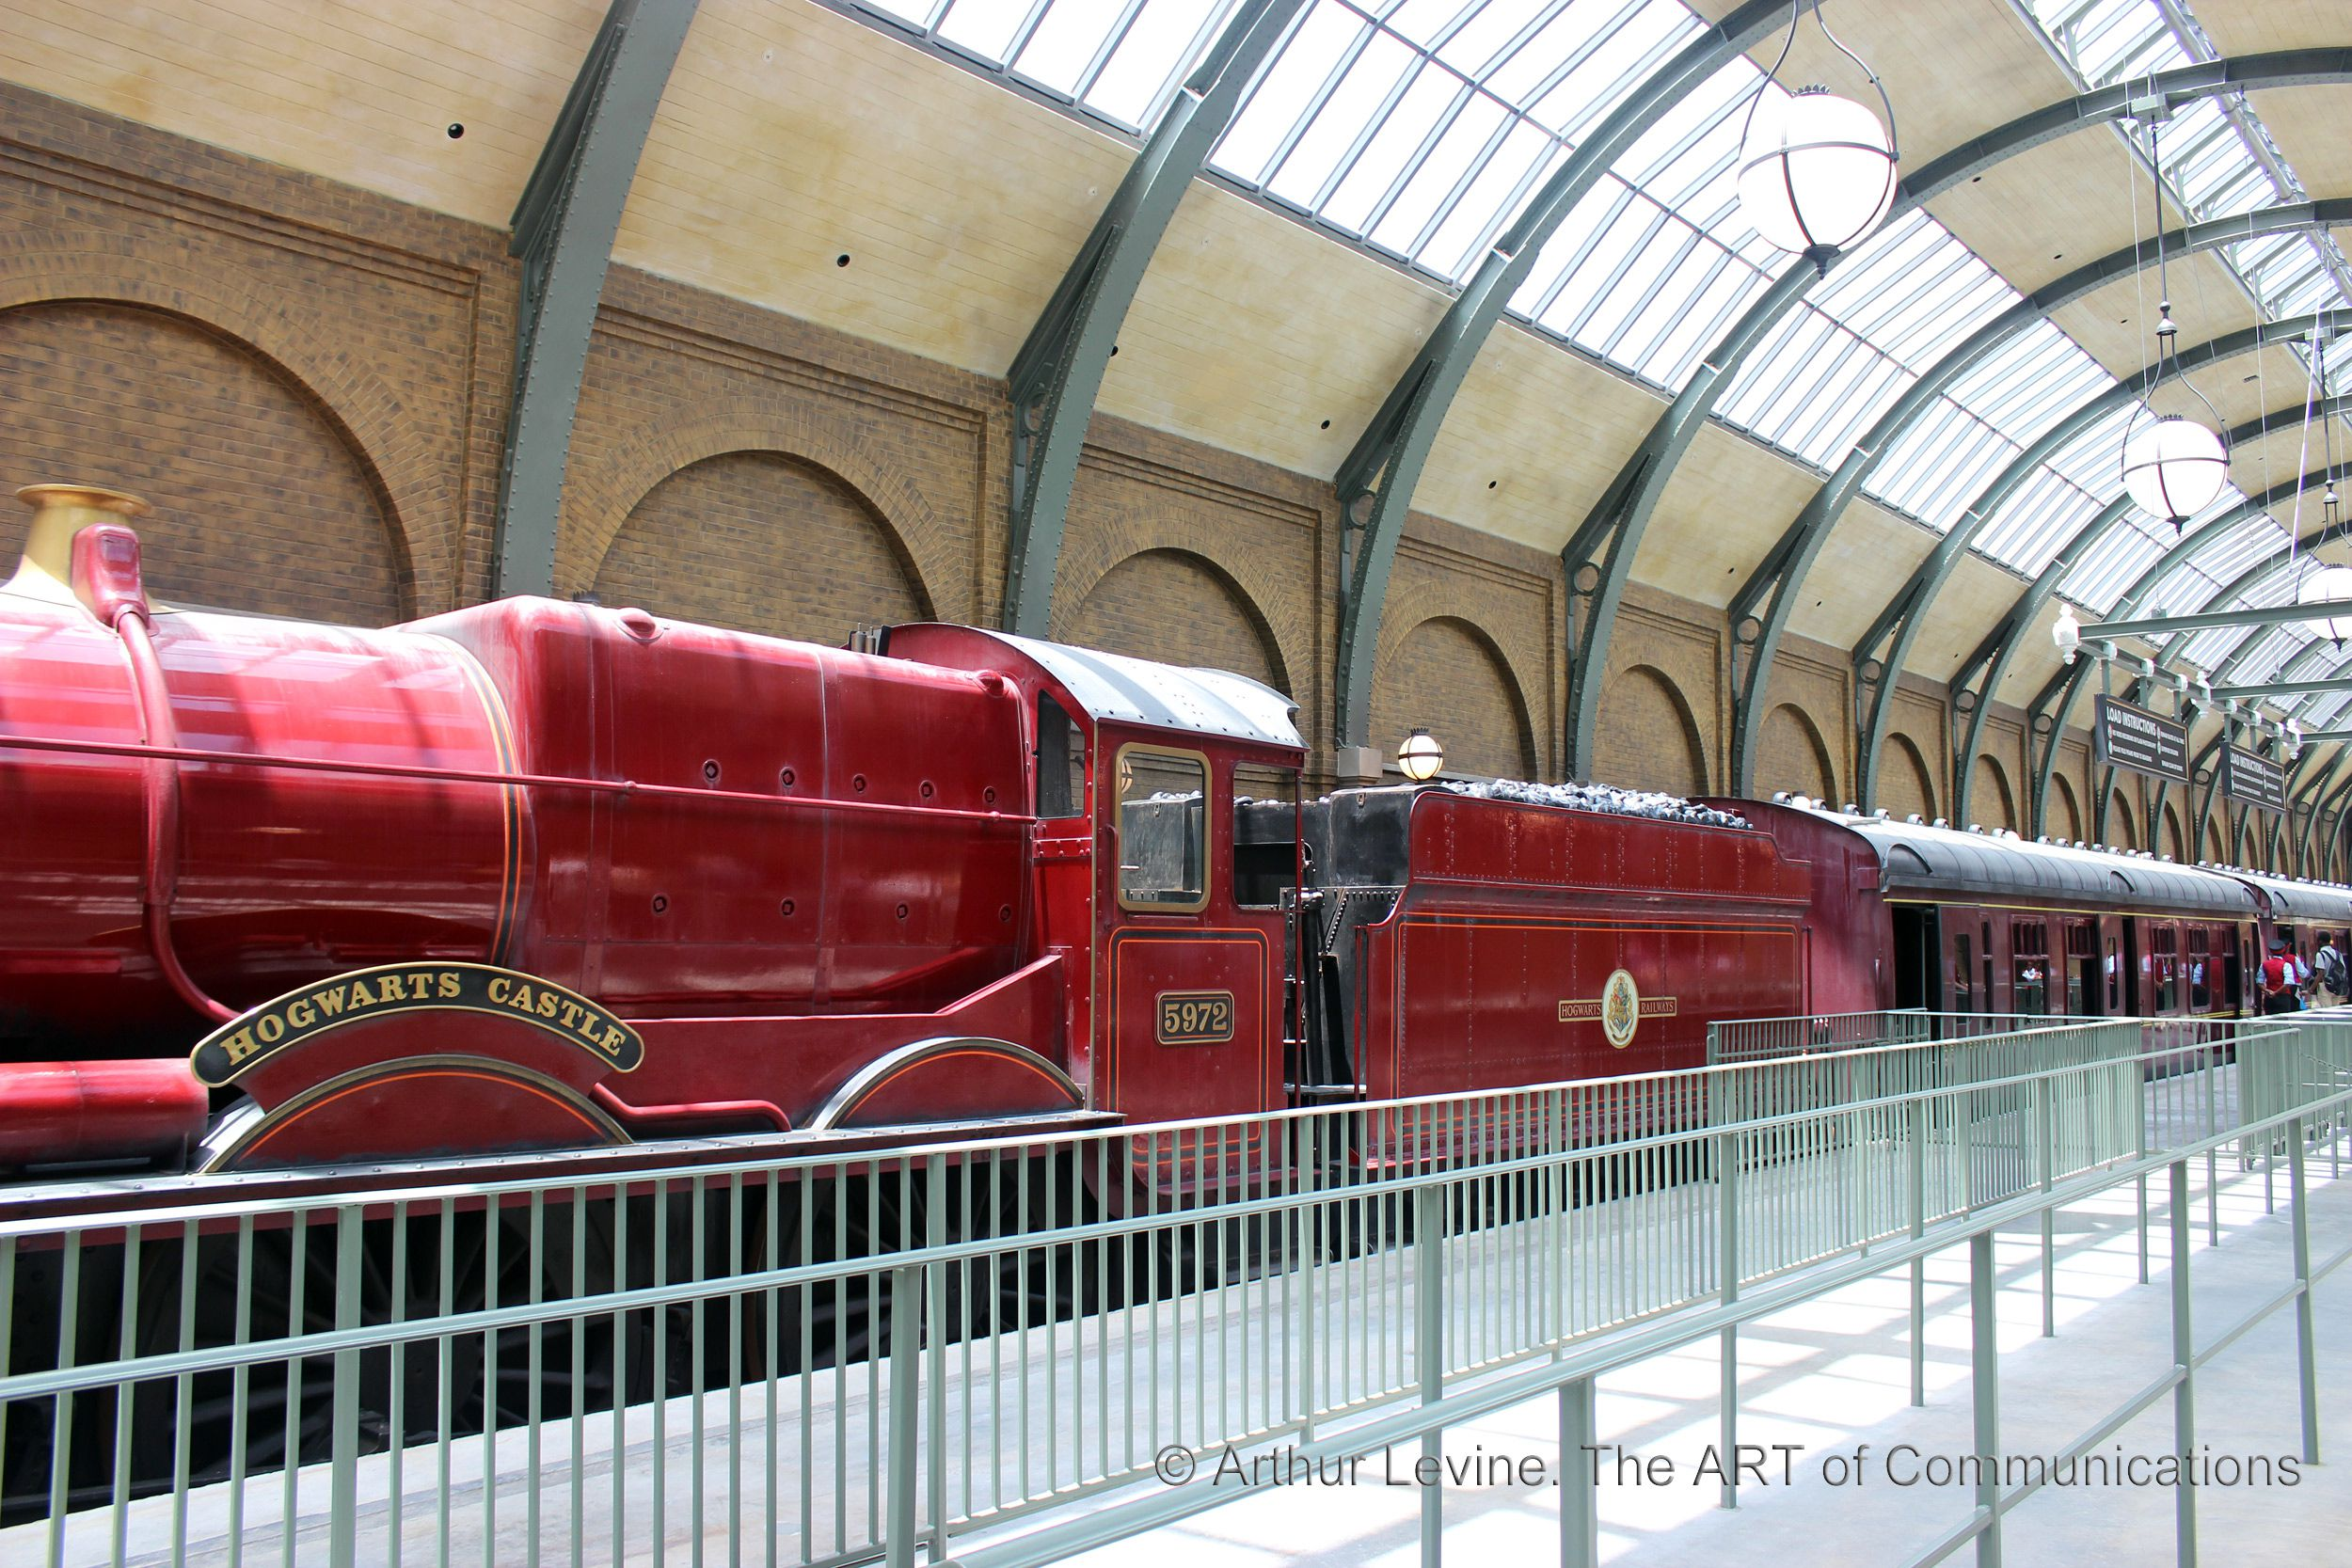 Tickets Needed For Hogwarts Express Ride At Universal